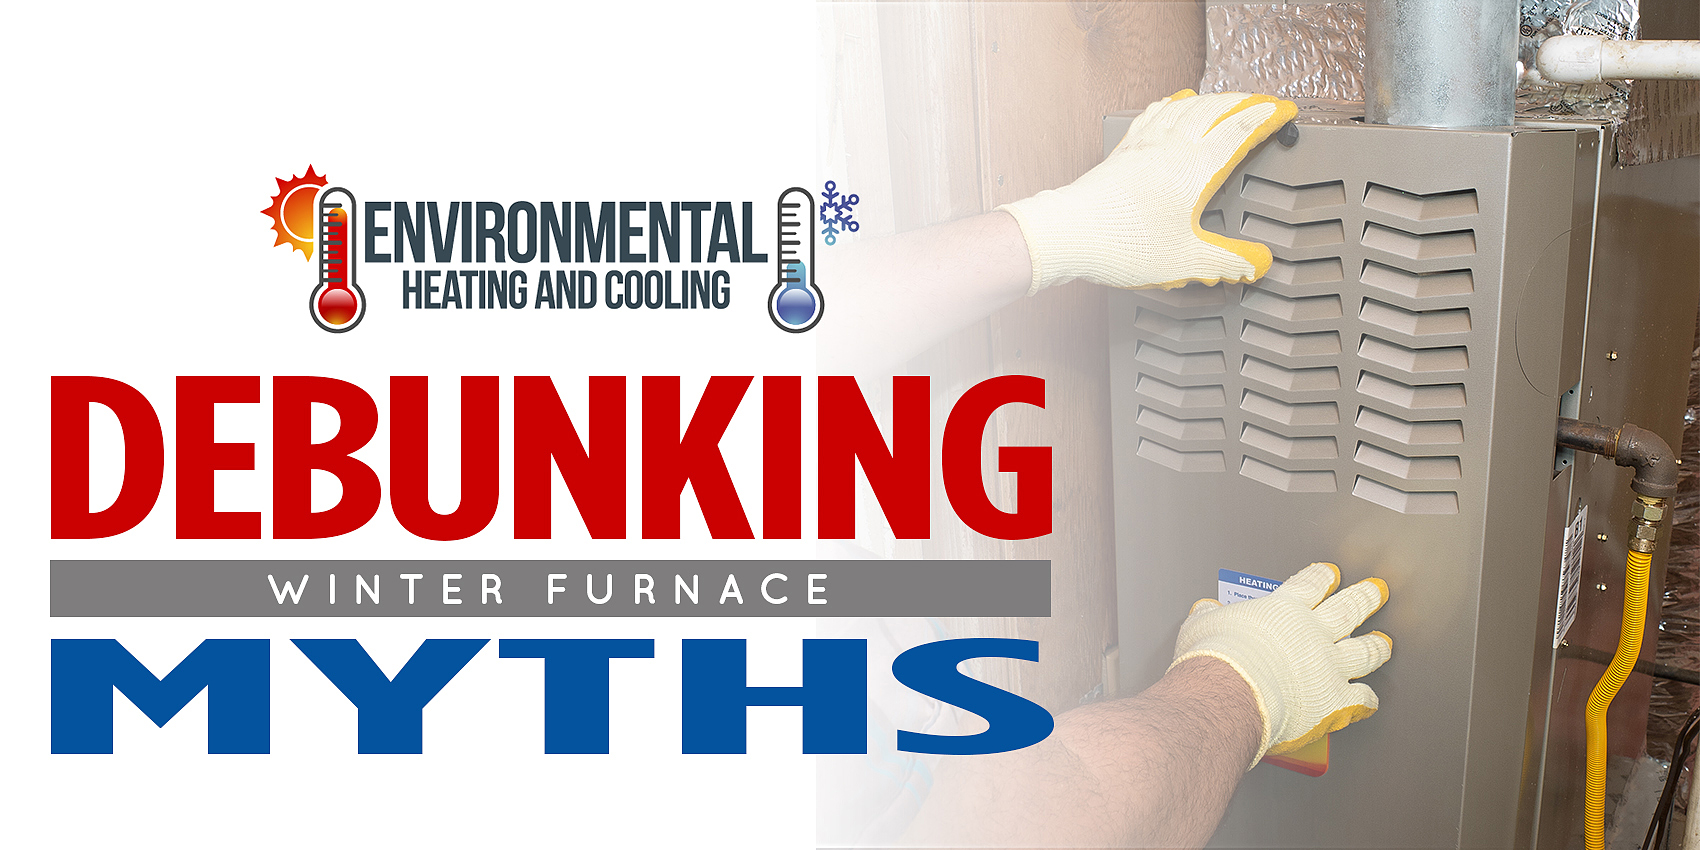 Debunking Winter Furnace Myths